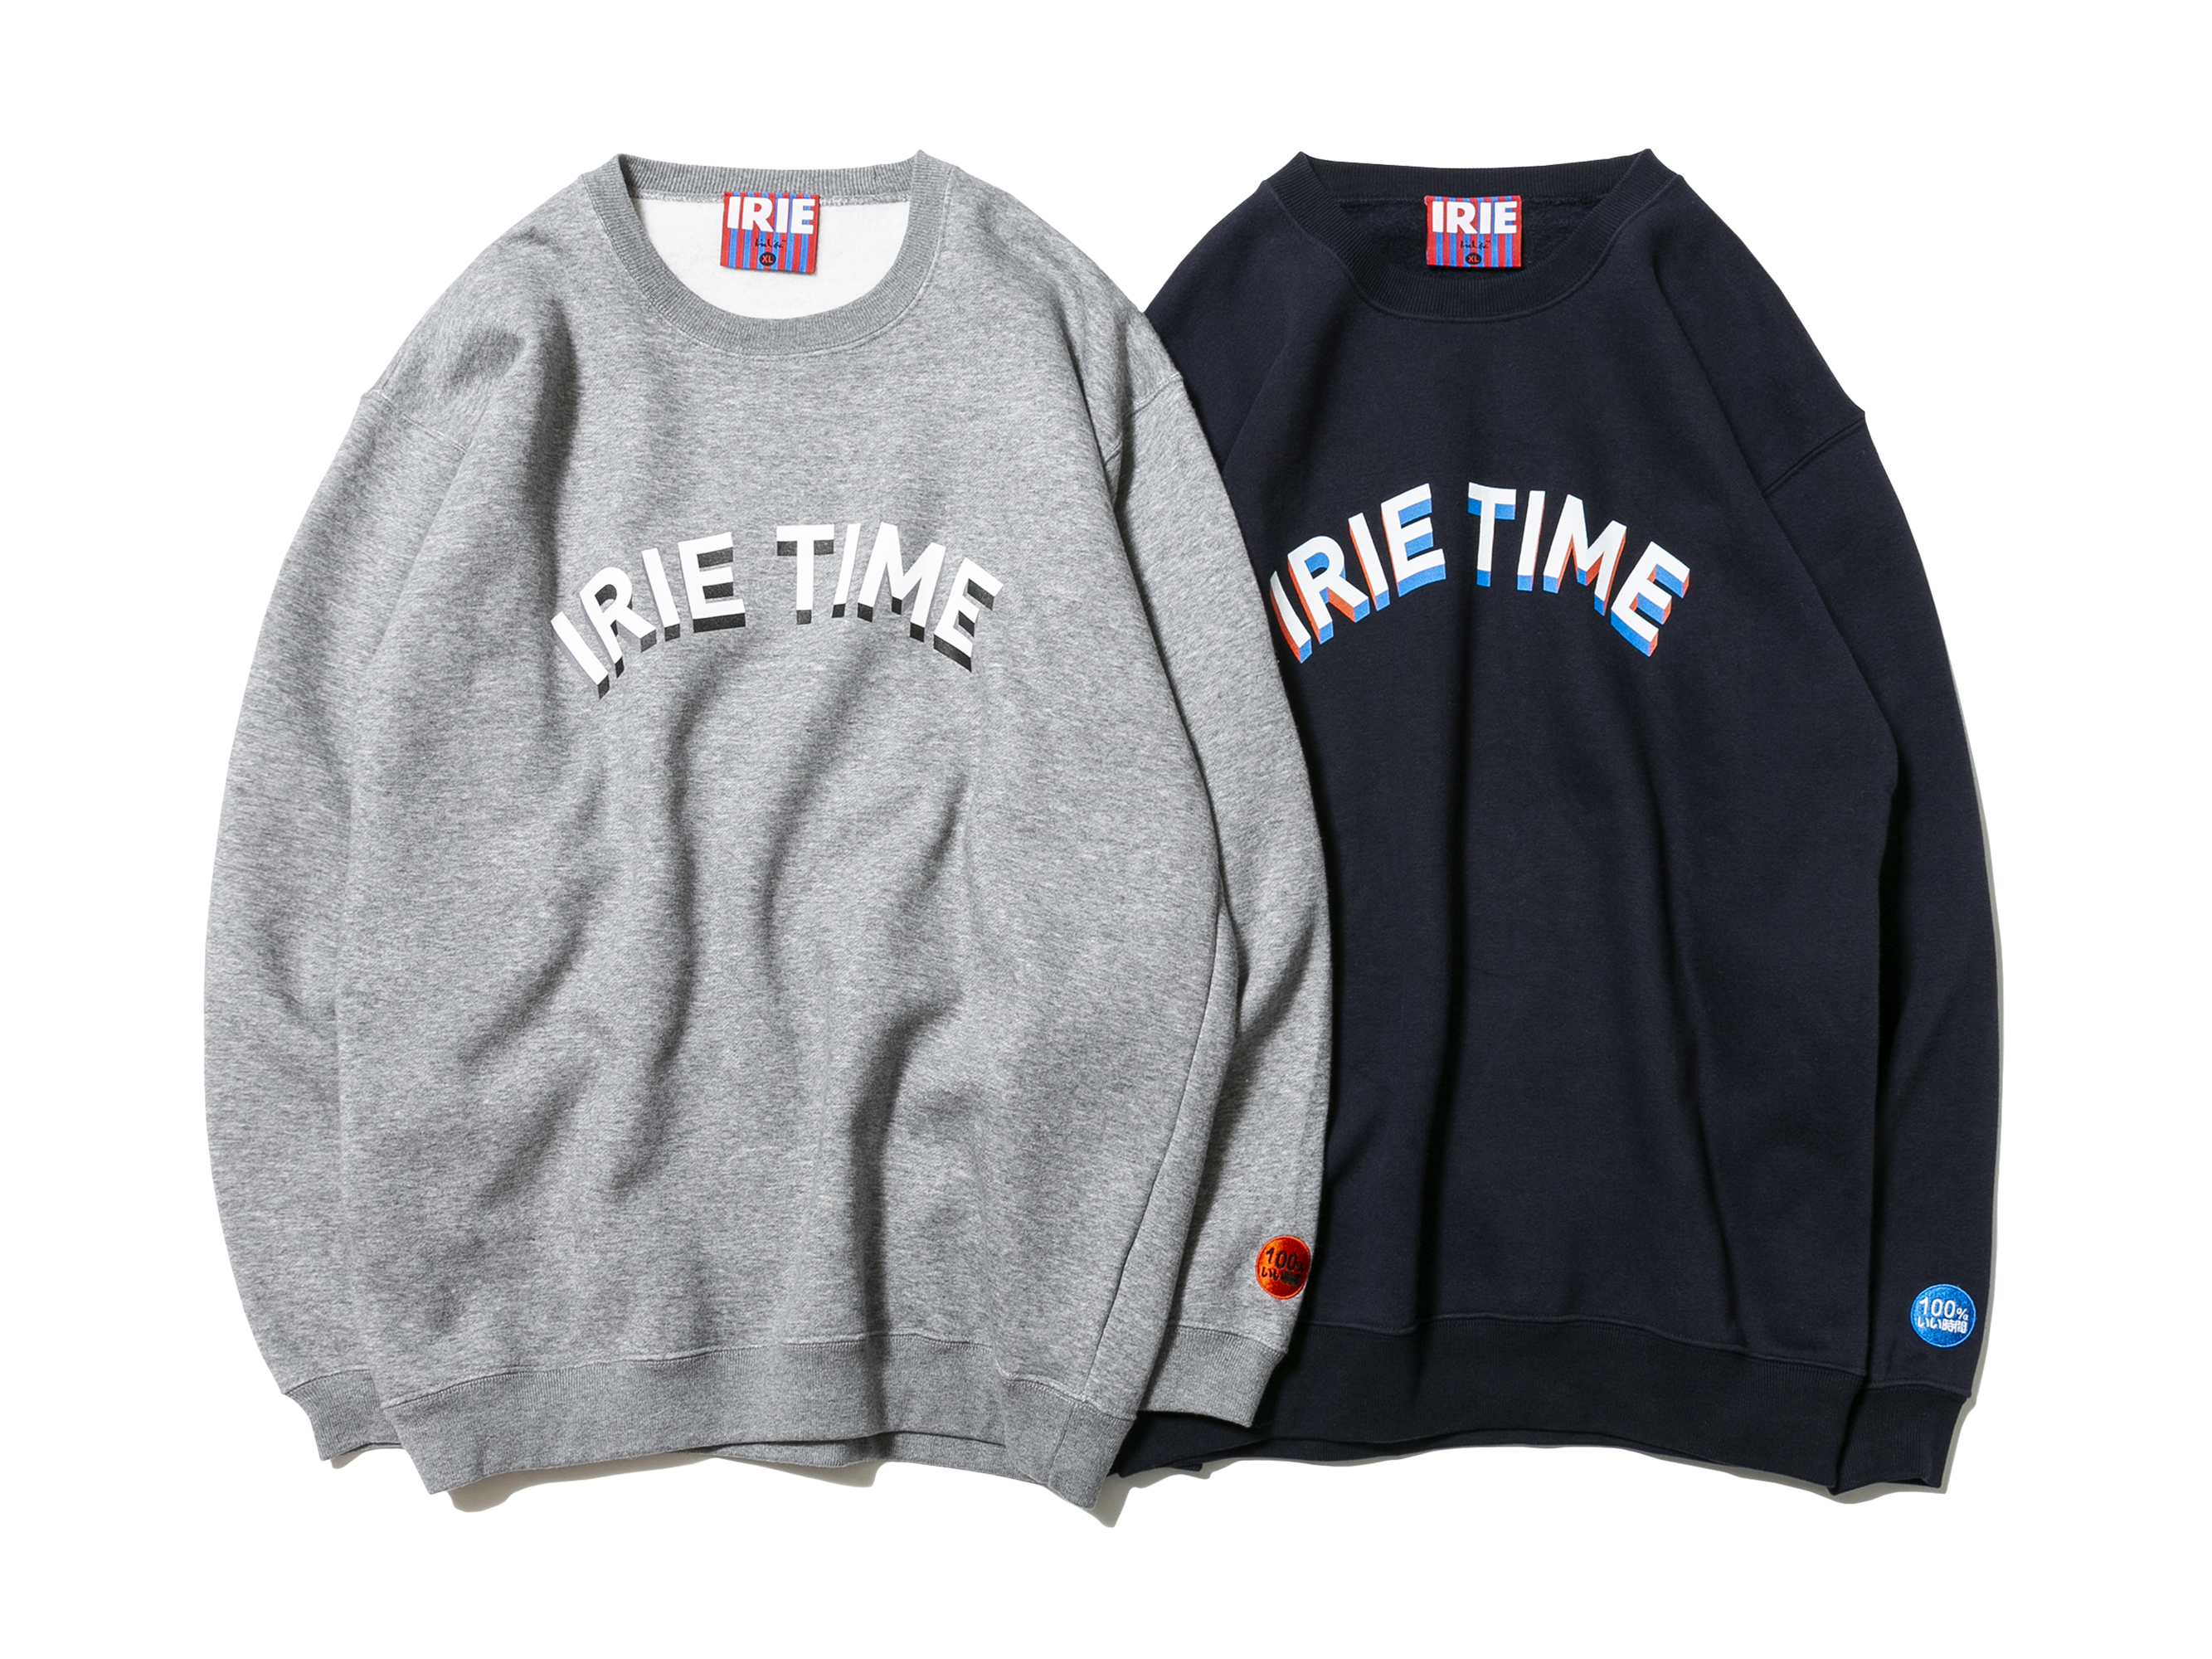 【20% OFF】IRIE TIME CREW - IRIE by irielife